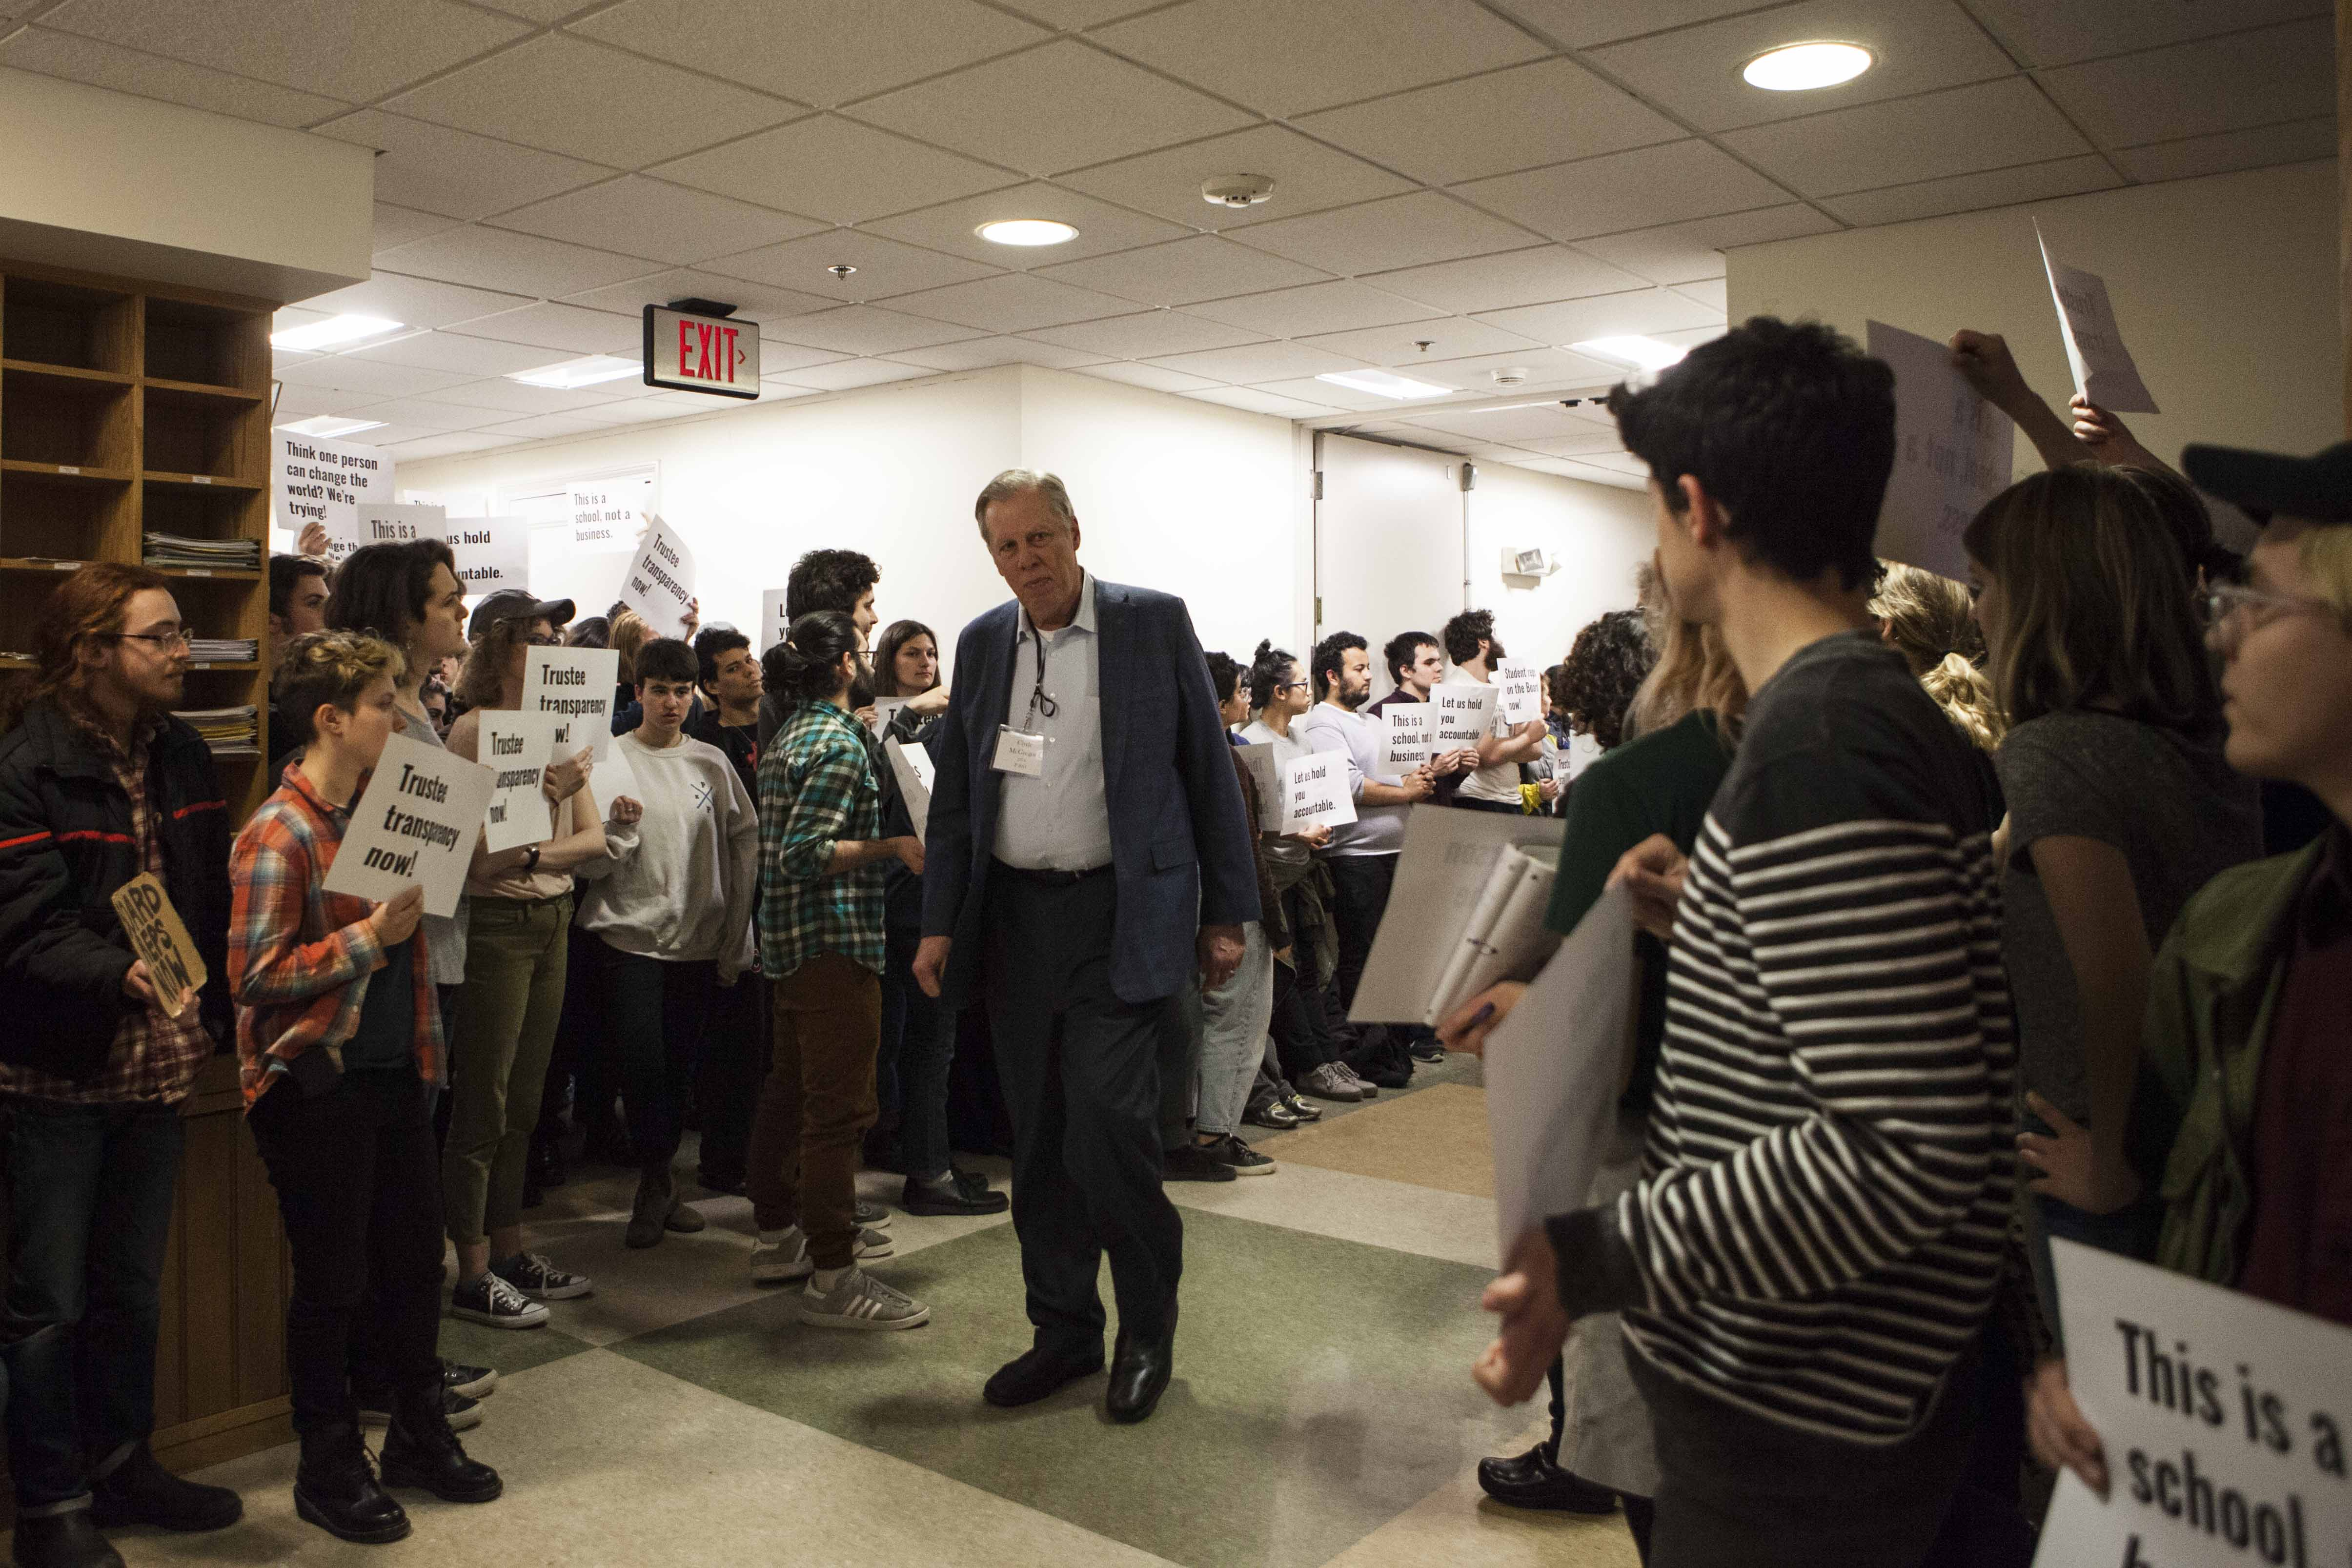 Student protestors surround Board of Trustees Chair Clyde McGregor as he makes his way to last night's board retreat. Students expressed frustration that the trustees have not involved students in their sessions.